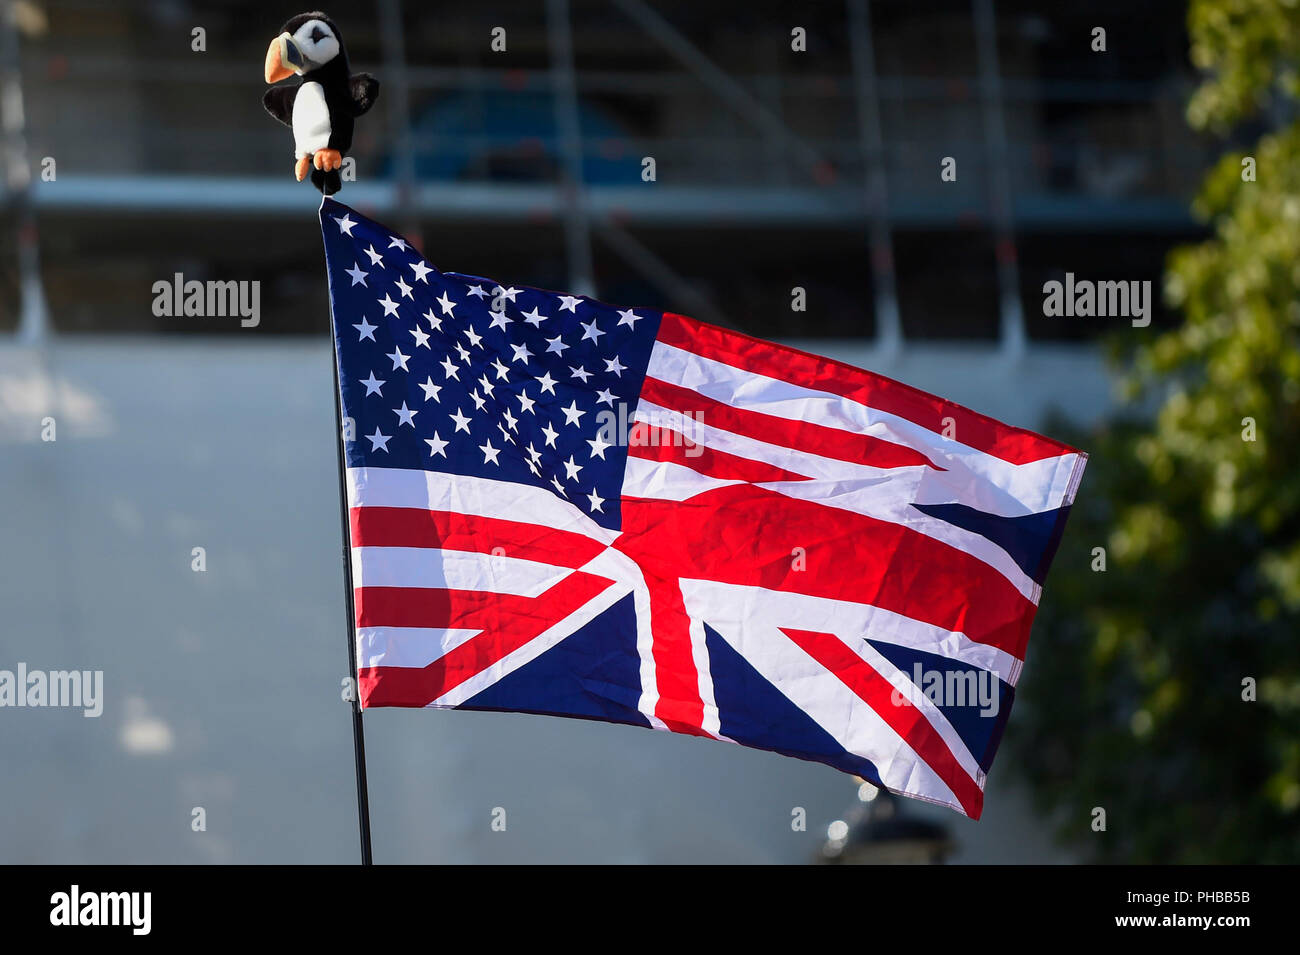 London, UK.  1 September 2018.  A UK and USA flag is seen as a 29 foot giant balloon depicting Sadiq Khan, Mayor of London, wearing a yellow bikini, flies over Parliament Square.  Activist Yanny Bruere raised £58,000 to fly the balloon in protest at the Mayor's decision to allow a giant balloon of Donald Trump as a baby to be flown during his visit to the UK.  The Sadiq Khan balloon is part of Buere's 'Make London Safe Again' campaign, a reference to a surge in violent crime in London and Mr Trump's slogan 'Make America Safe Again'. Credit: Stephen Chung / Alamy Live News - Stock Image